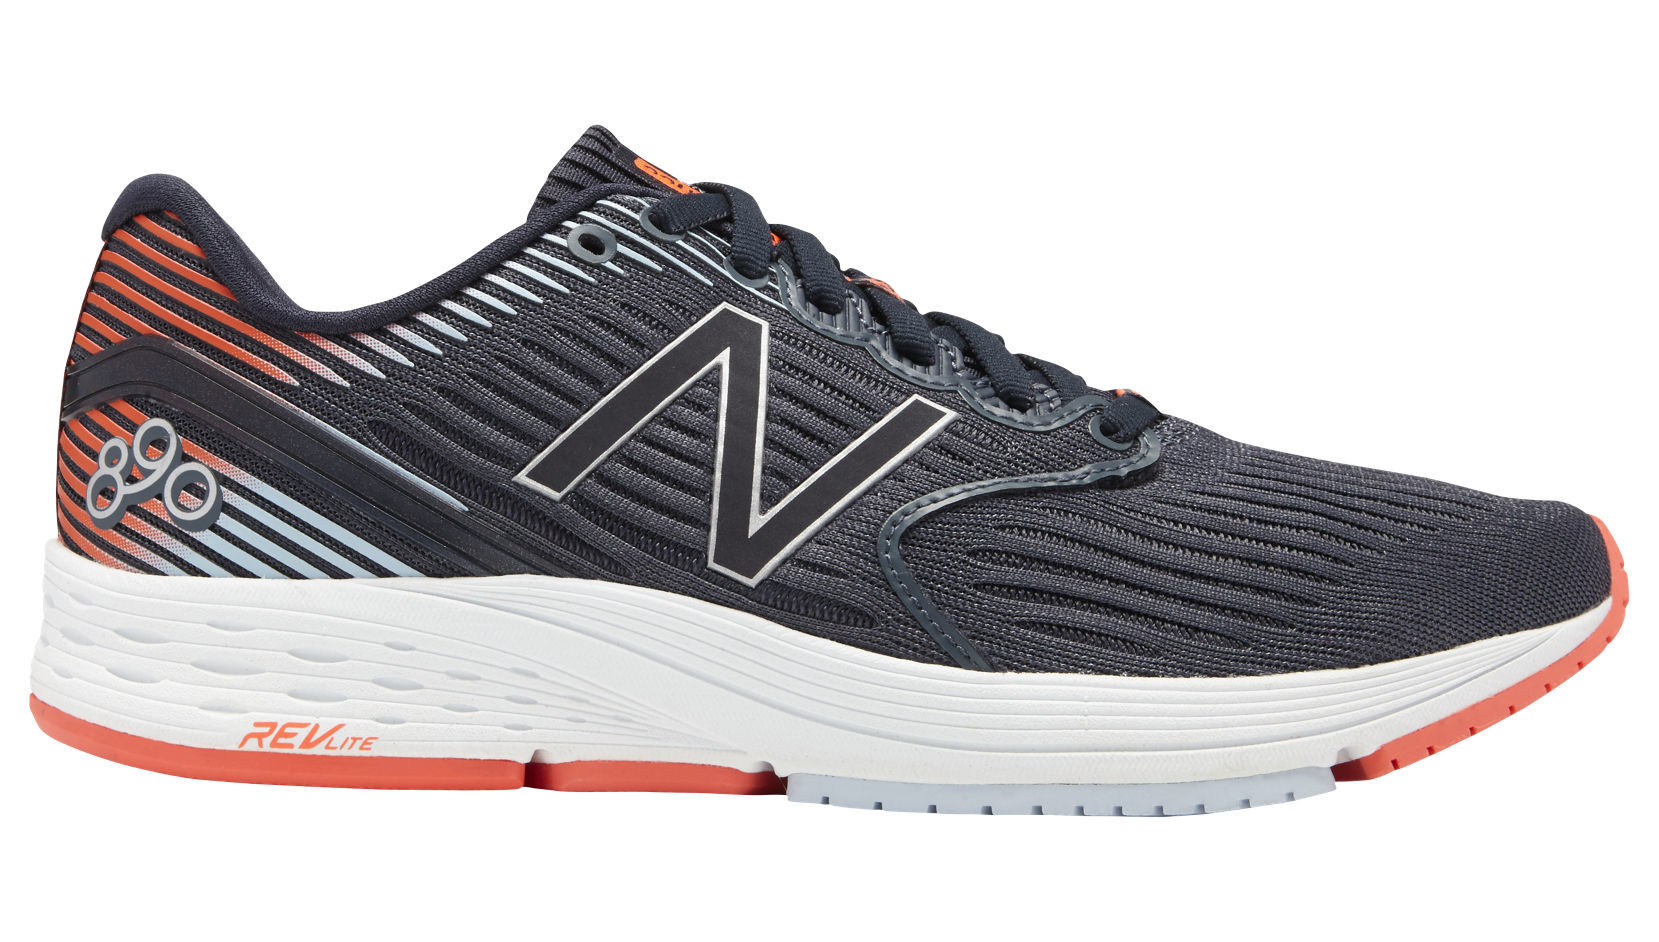 New Balance Lady 890v6 in Grau Orange